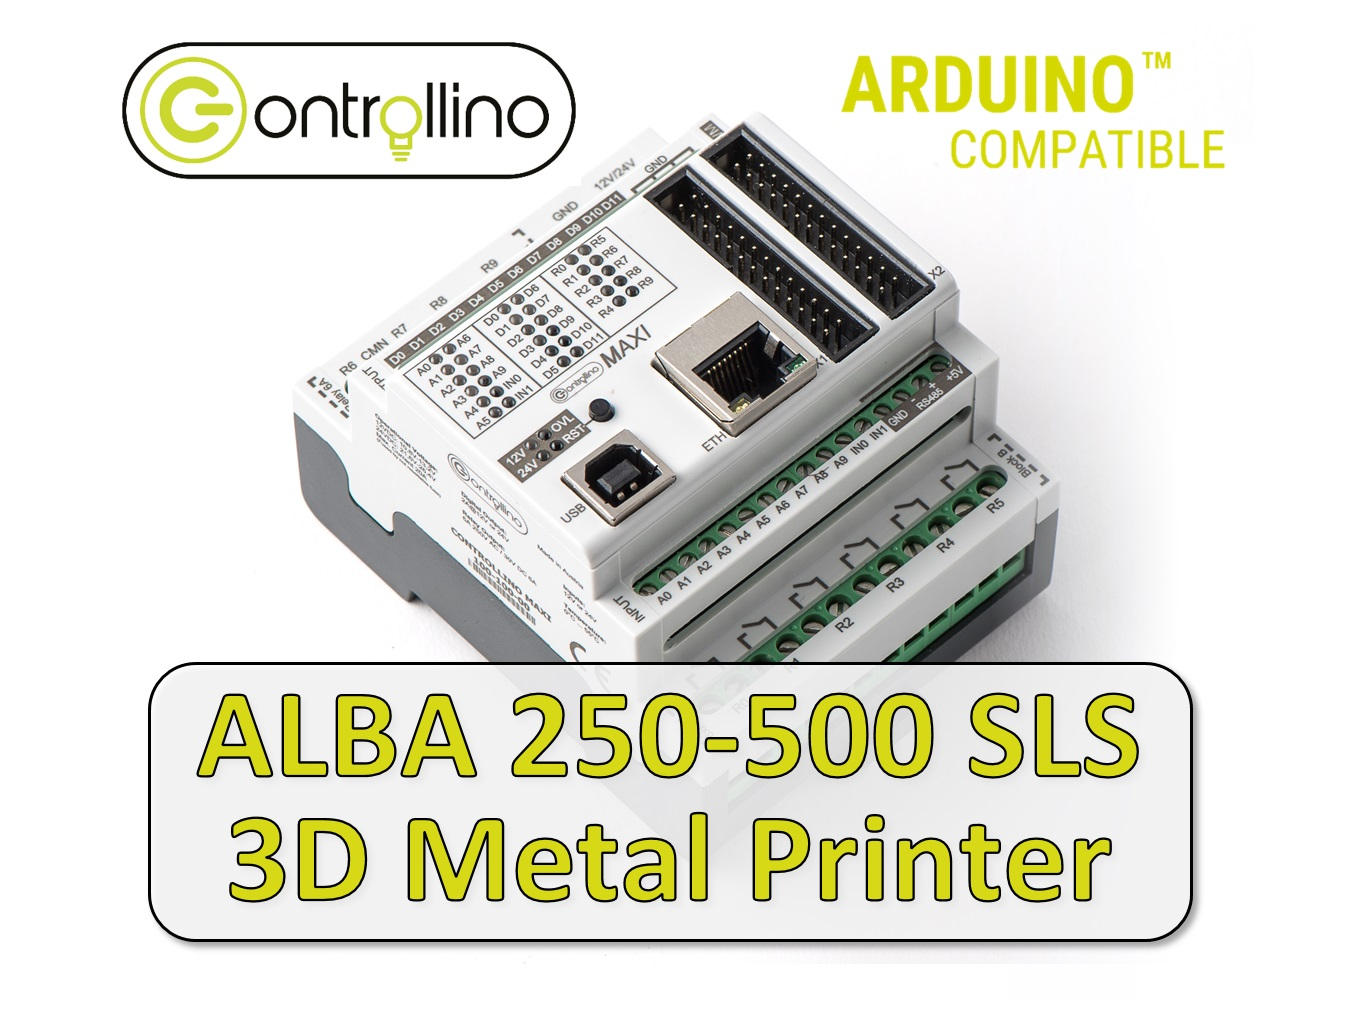 Alba 250-500 SLS 3D Metal Printer - powered by CONTROLLINO